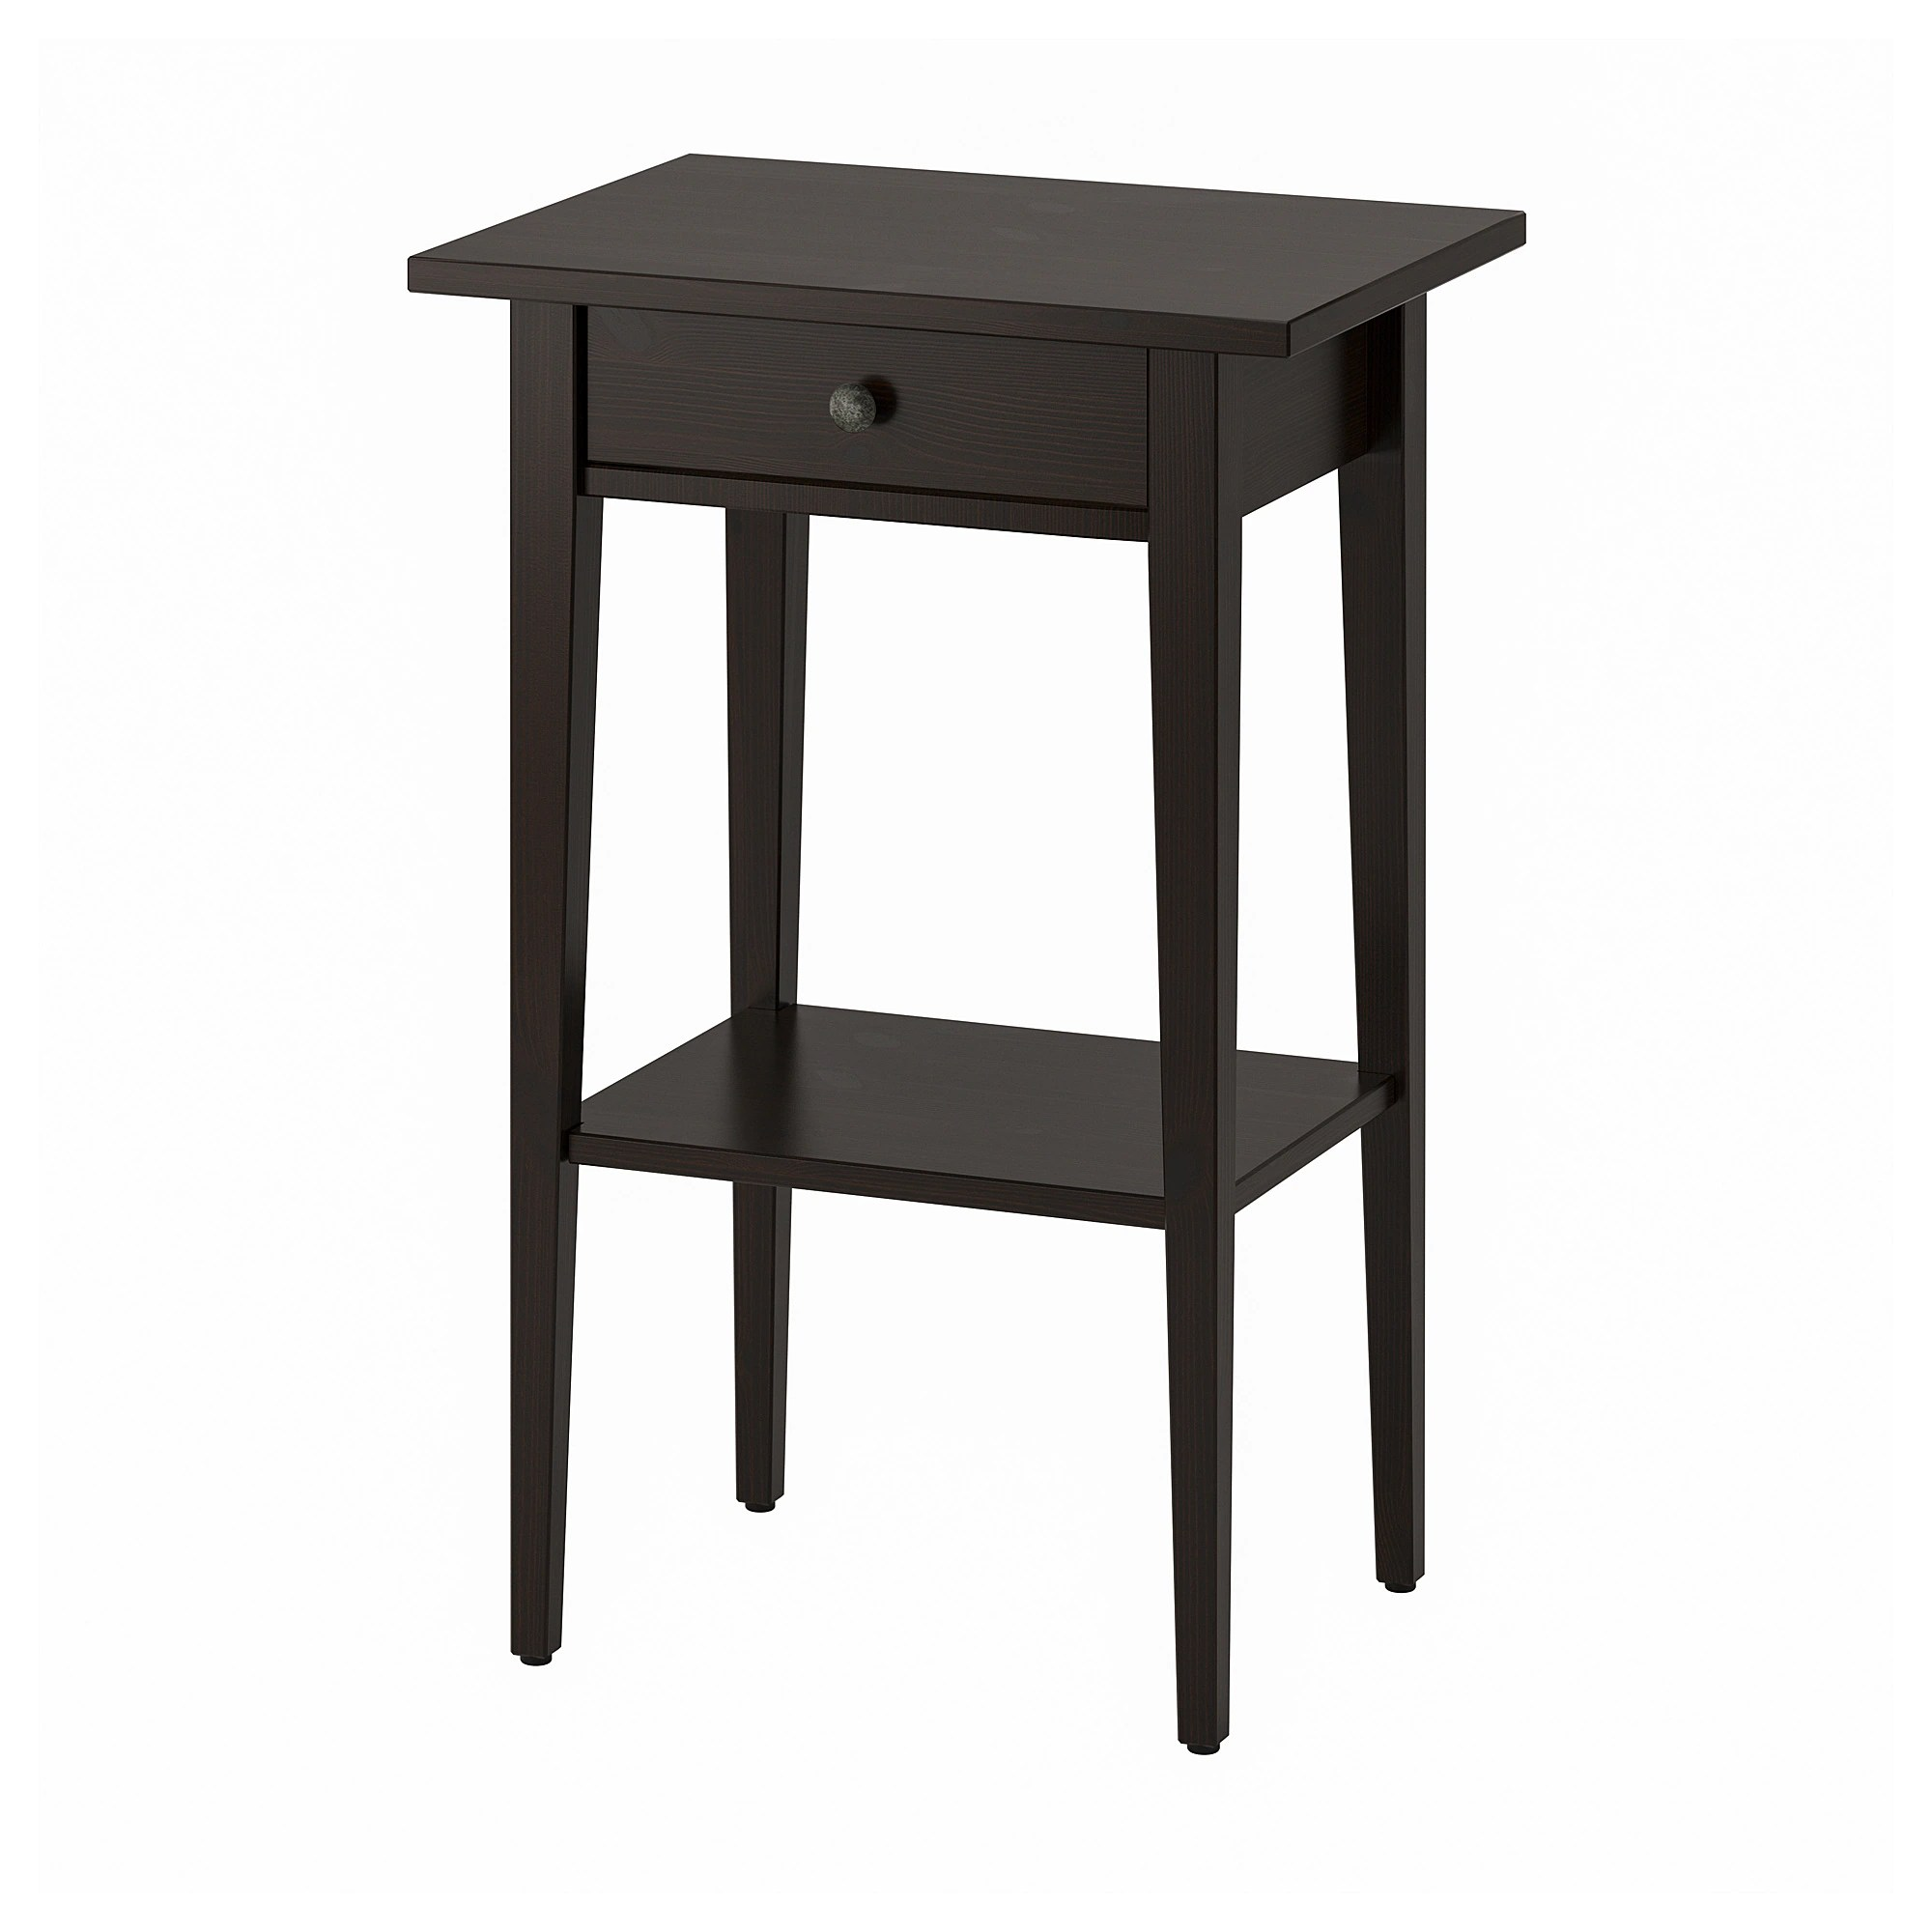 Table De Chevet Hemnes Brun Noir